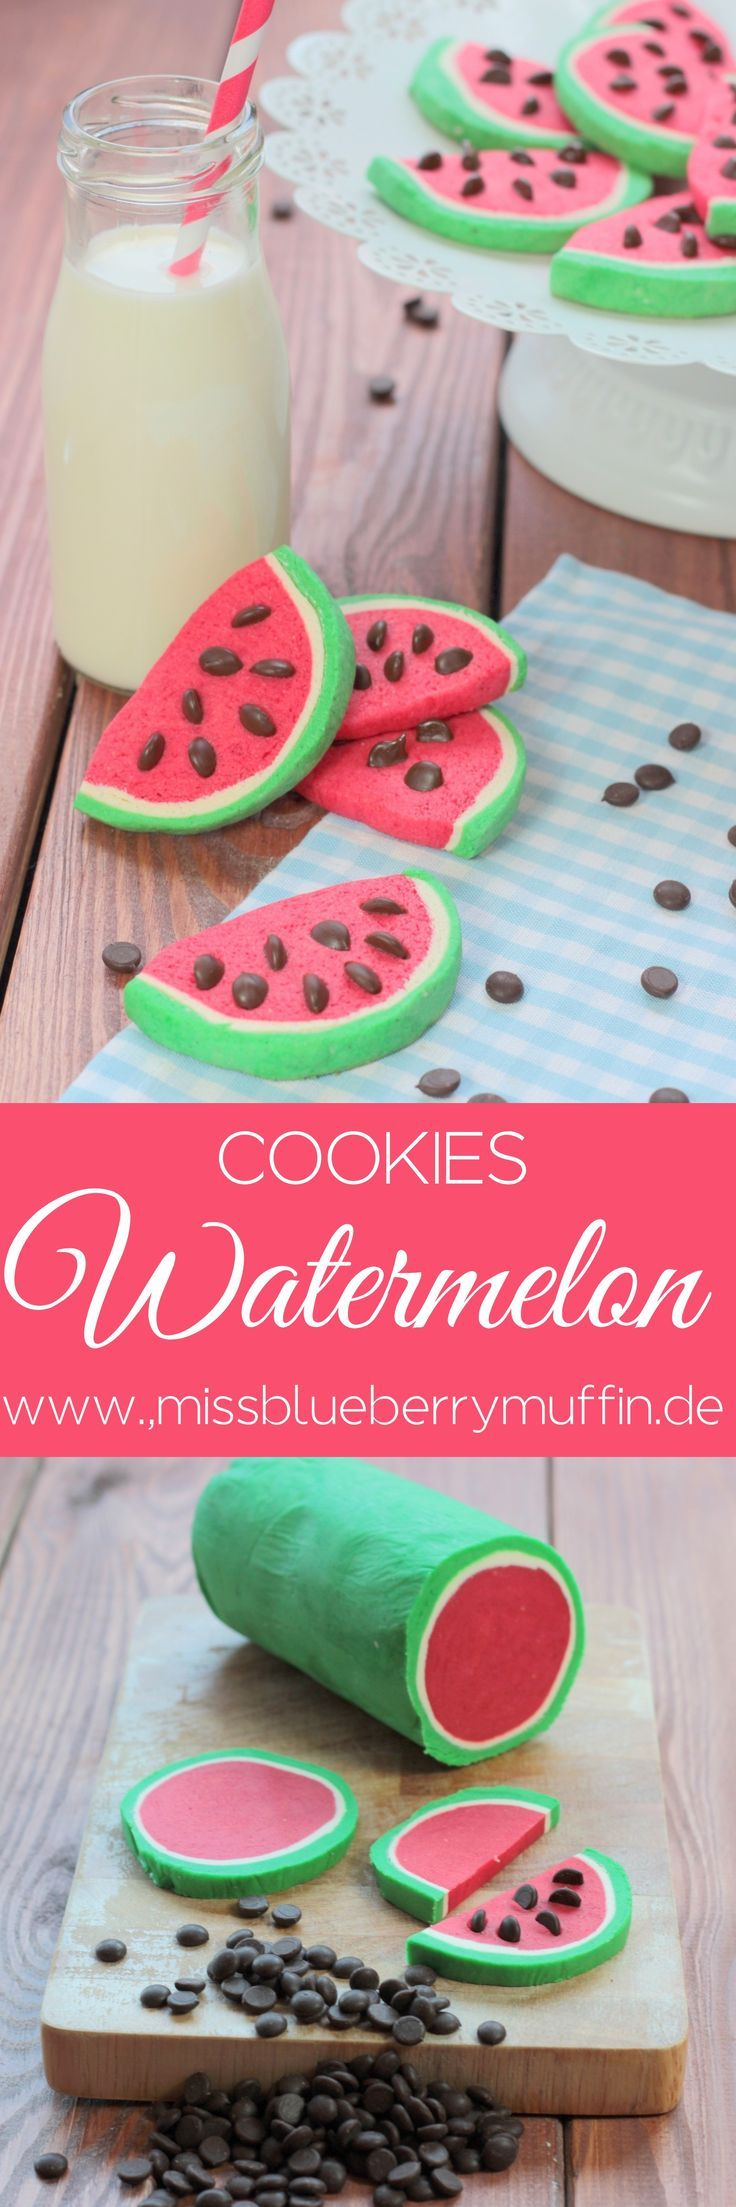 Süße Wassermelonen Kekse // Cute watermelon cookies ?? (Cute Bake Treats)